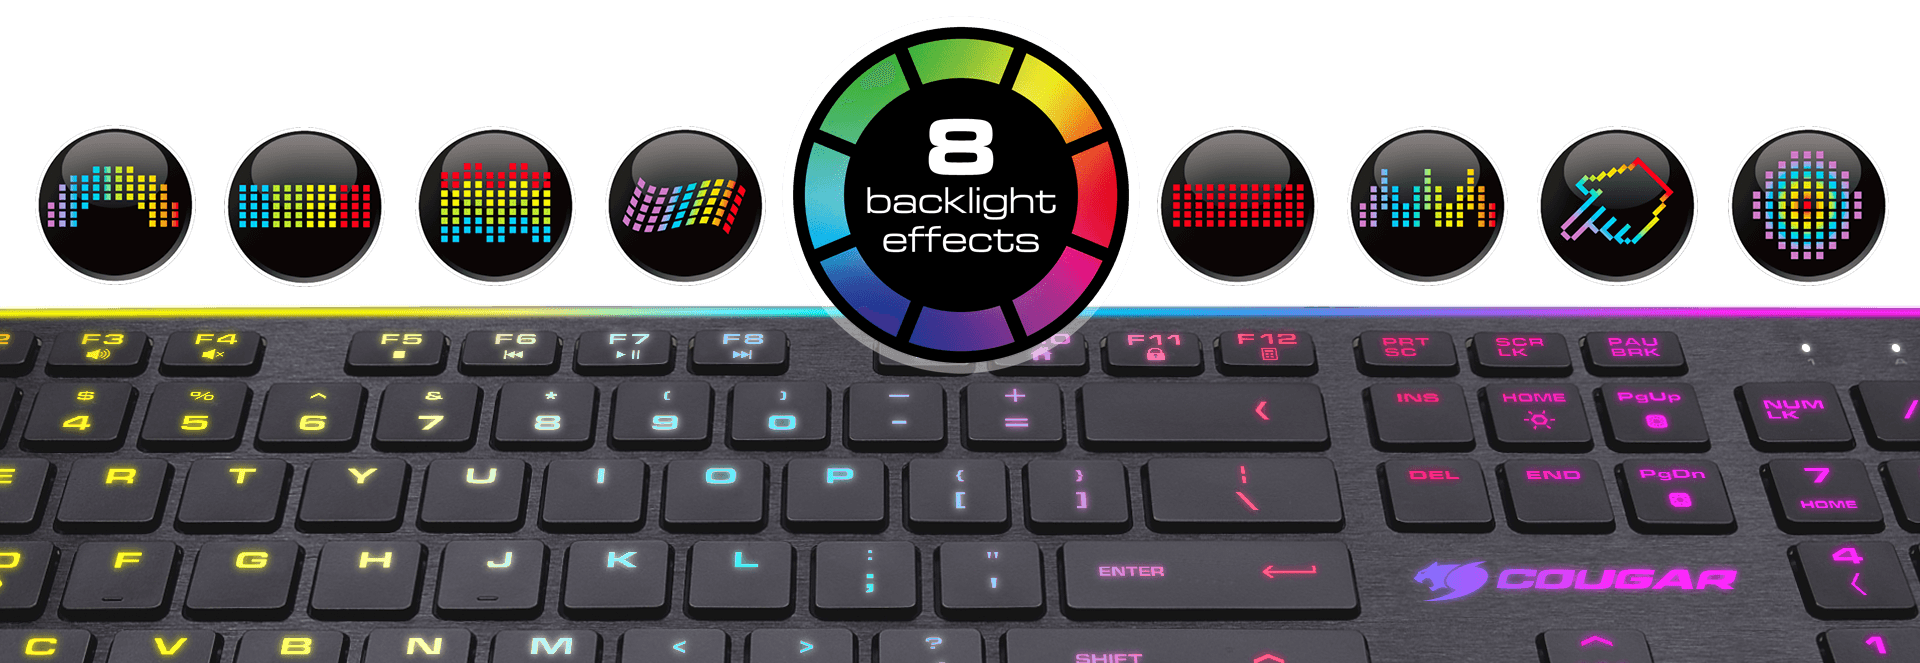 Cougar vantar scissor gaming keyboard with a backlit area far larger than that of most gaming keyboards the possibility of enjoying 8 different effects including a customizable one buycottarizona Image collections